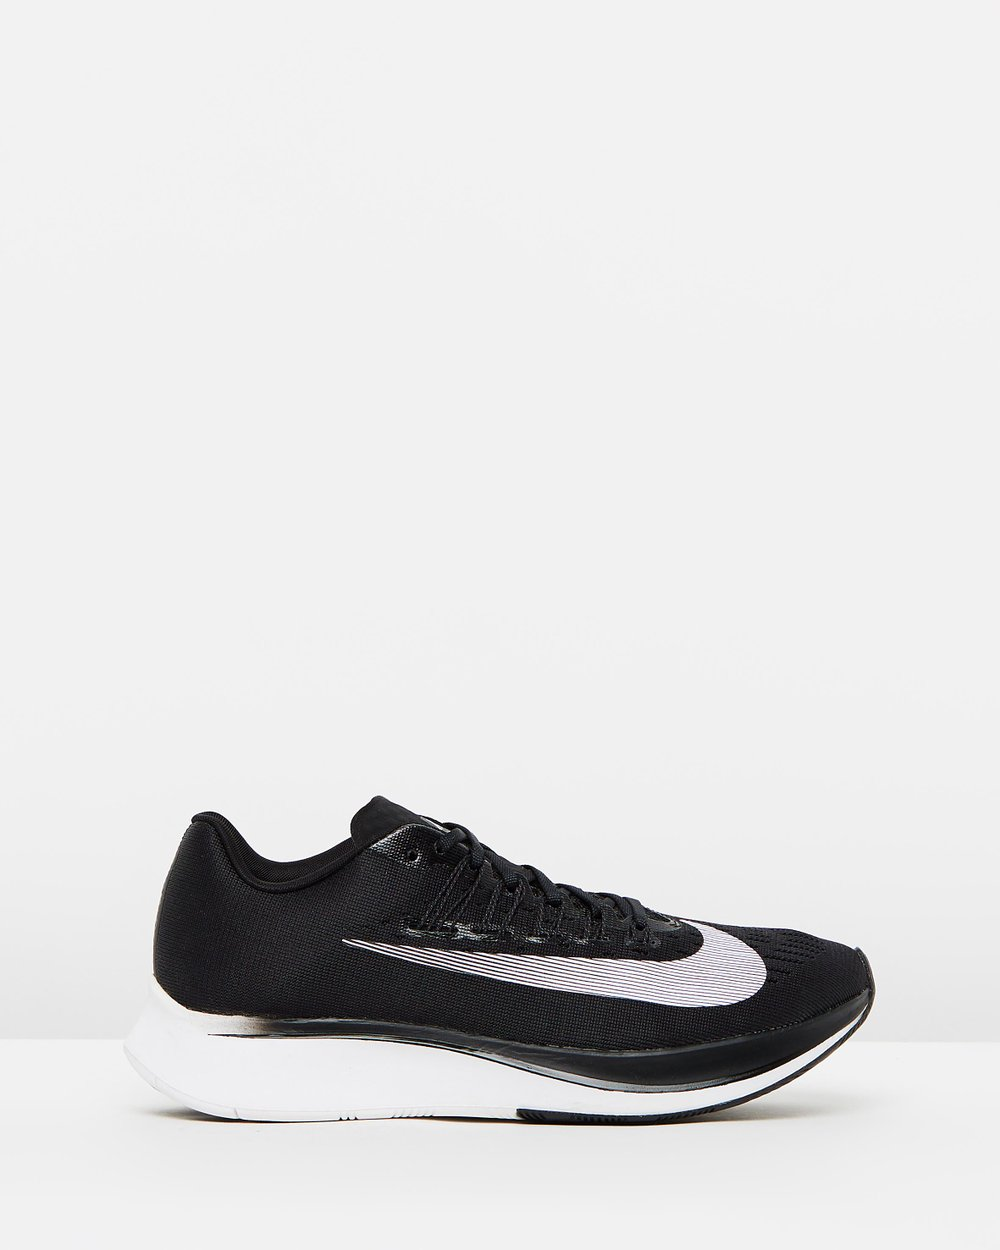 Nike Zoom Fly Running Shoes - Women s by Nike Online  d64ca066c3